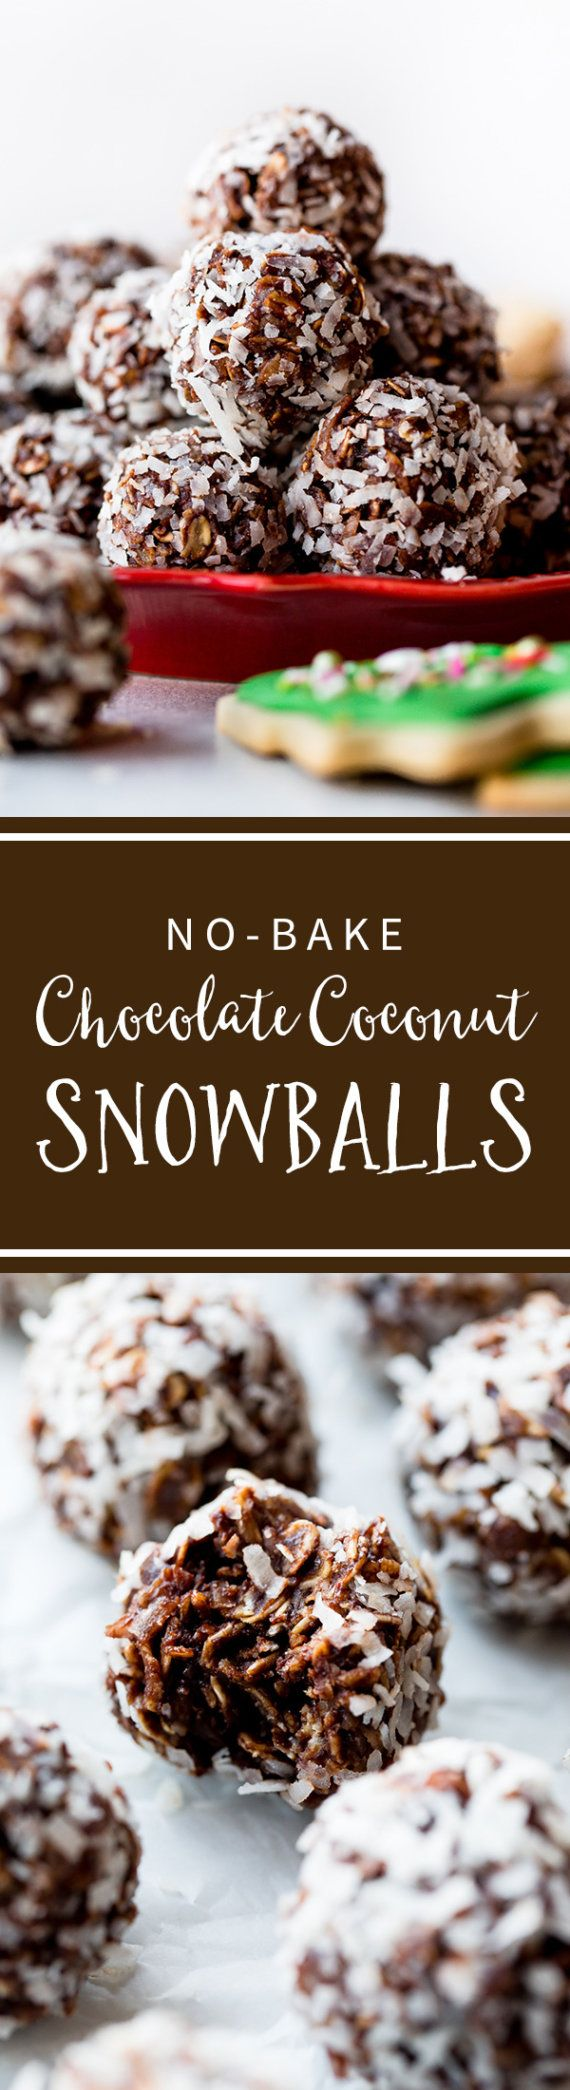 These no-bake chocolate and coconut snowball cookies are SO easy to make! Full of oats and cocoa and rolled in coconut to look like snowballs! Recipe on sallysbakingaddiction.com